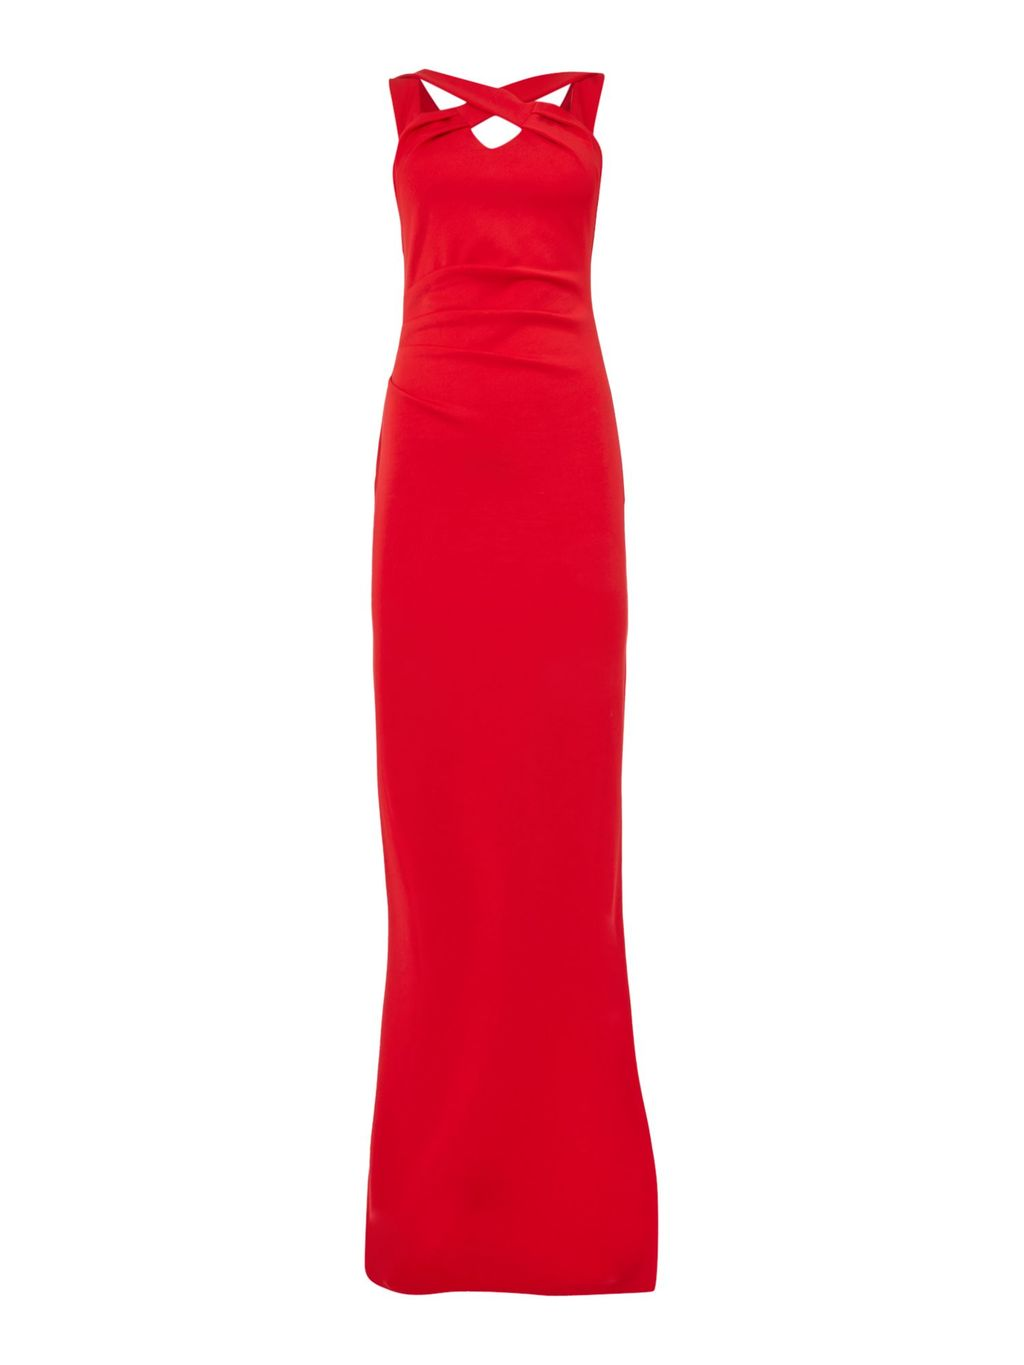 Sleeveless Cross Over Maxi Dress, Red - neckline: v-neck; fit: tight; pattern: plain; sleeve style: sleeveless; style: maxi dress; length: ankle length; predominant colour: true red; occasions: occasion; sleeve length: sleeveless; pattern type: fabric; texture group: other - light to midweight; fibres: viscose/rayon - mix; season: s/s 2016; wardrobe: event